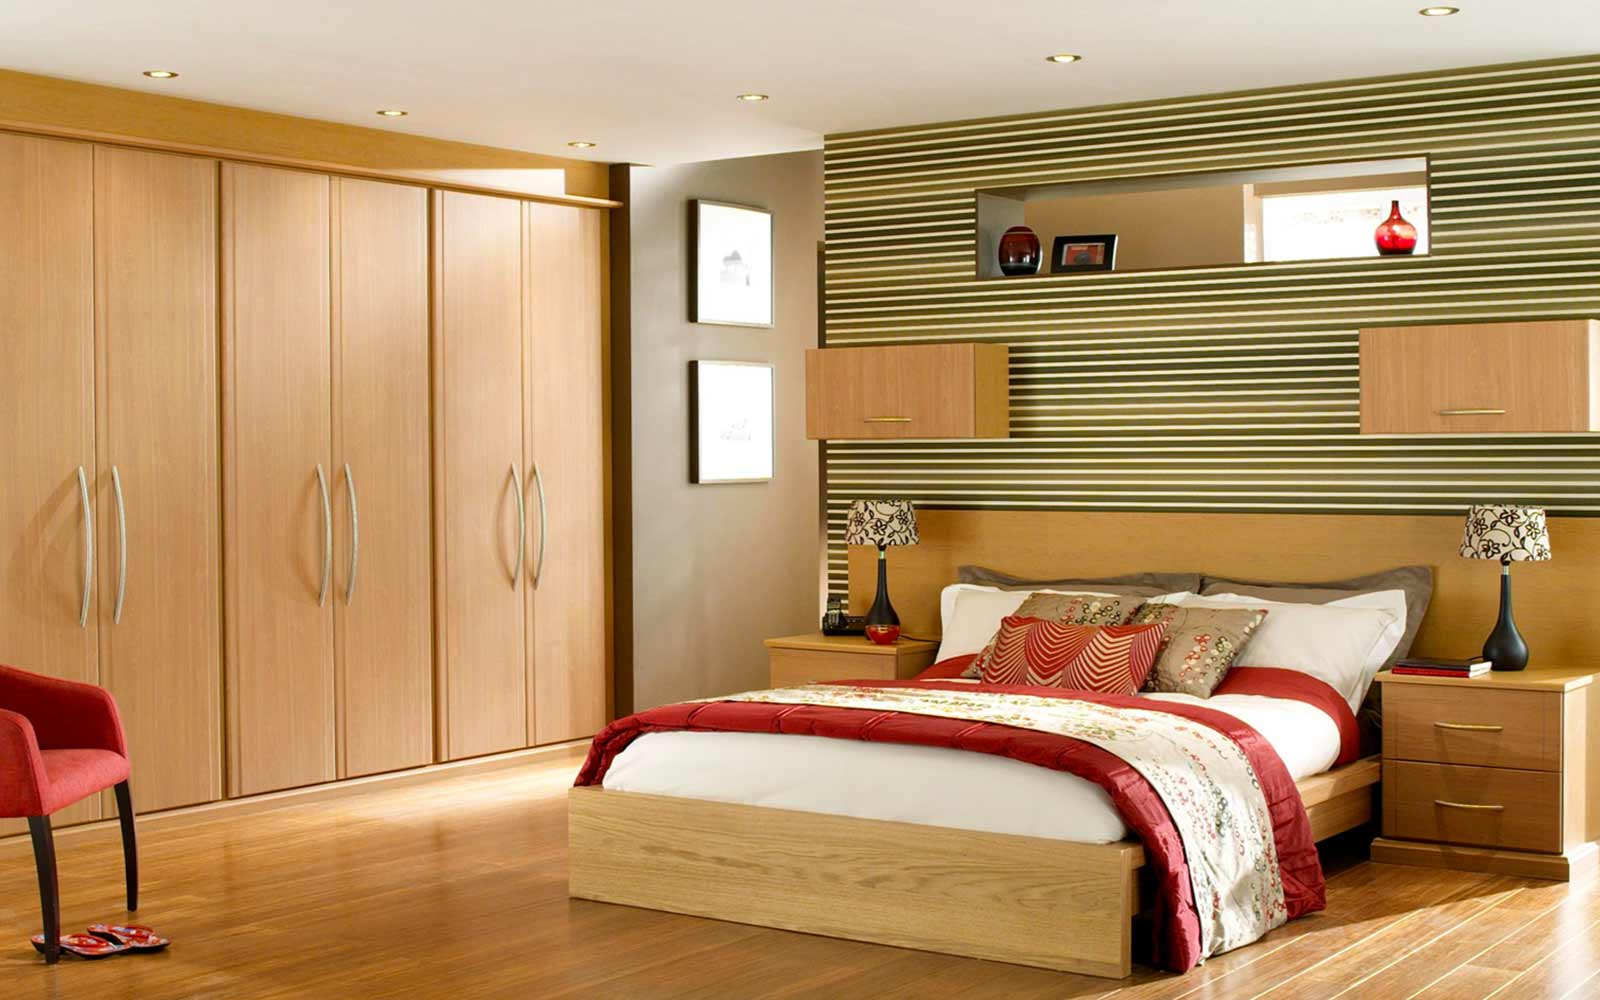 35 images of wardrobe designs for bedrooms for Bedroom decoration photos